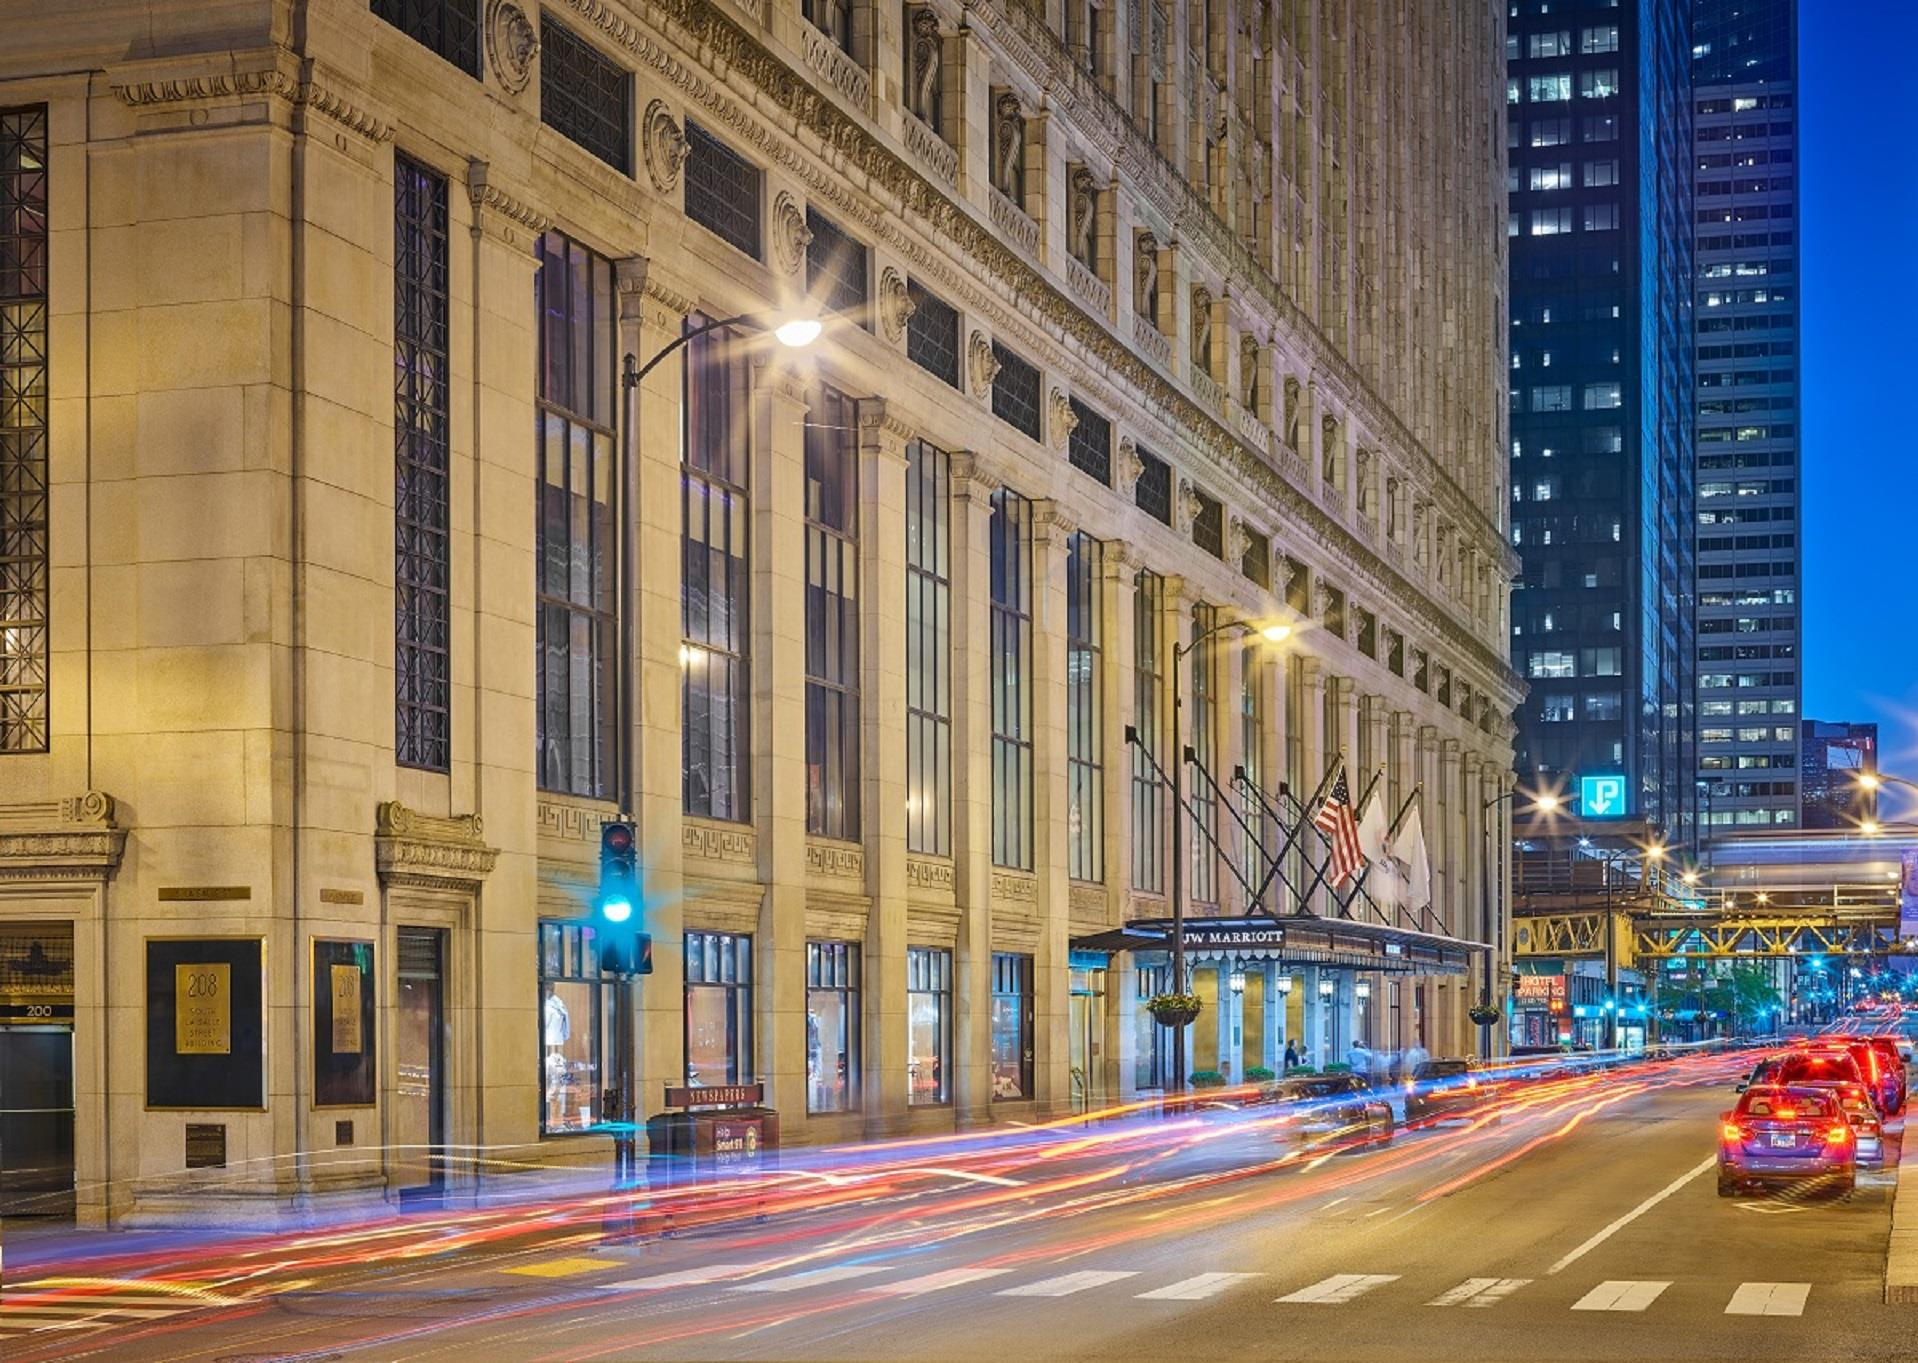 Meetings and events at Sheraton Grand Chicago, Chicago, IL, US